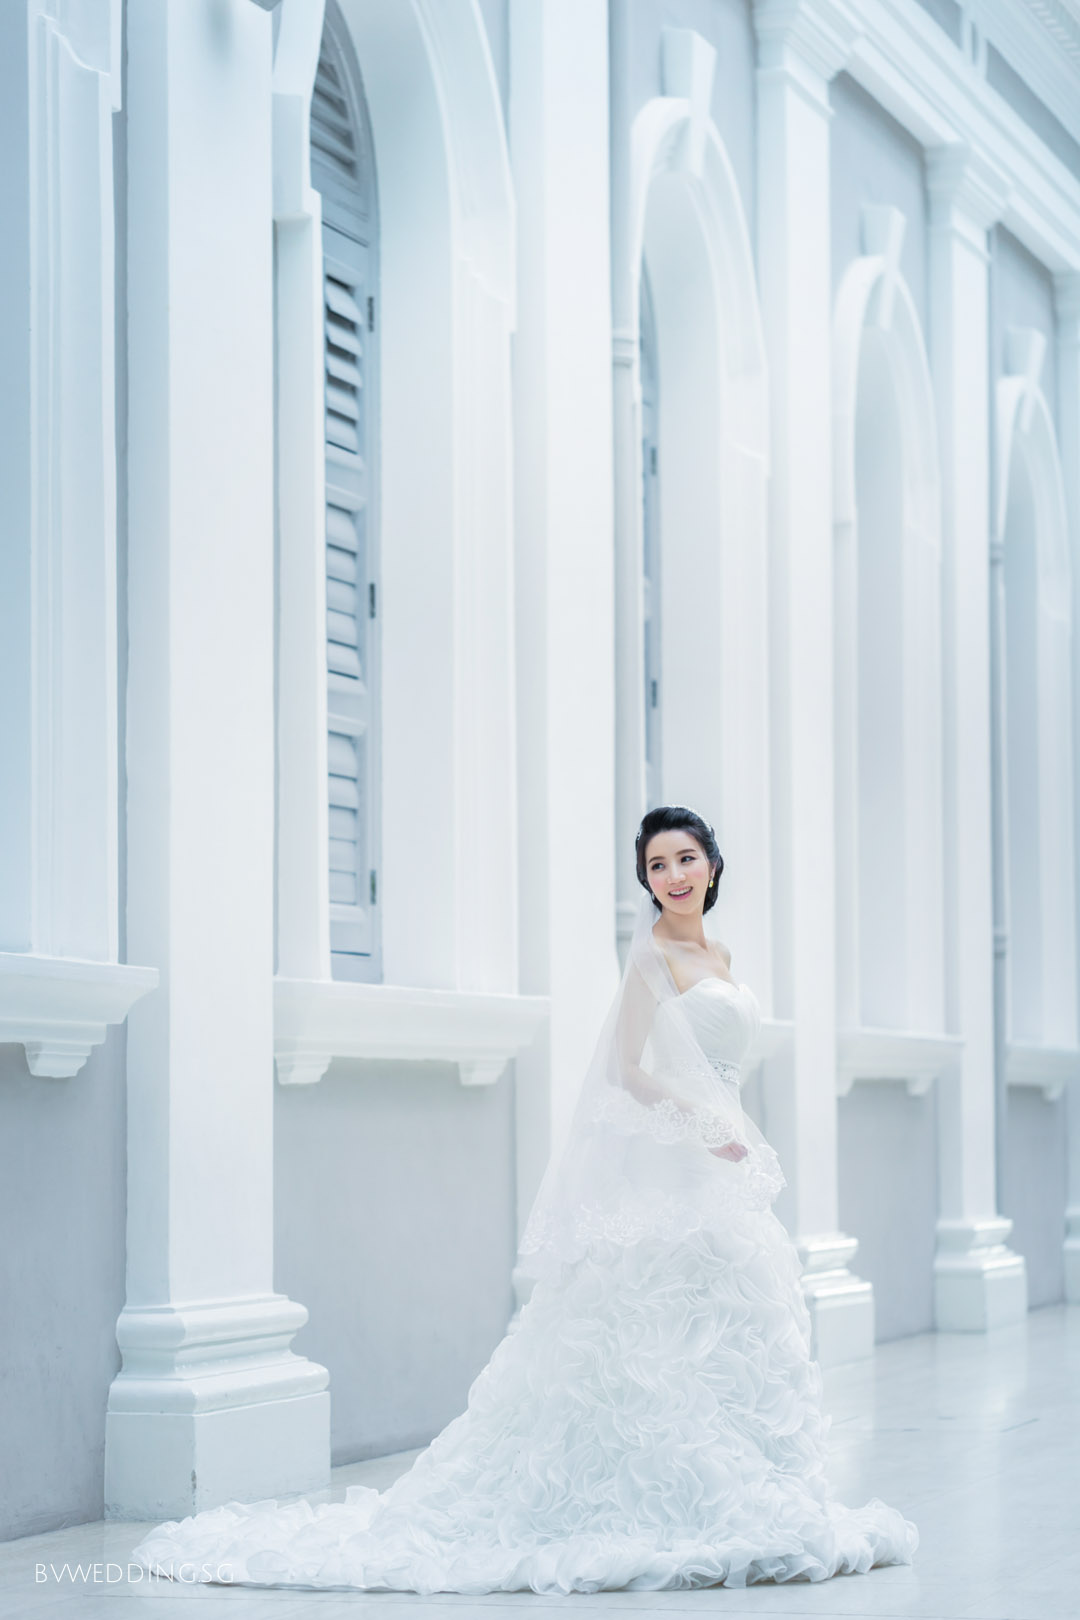 Pre-wedding Photoshoot at National Museum